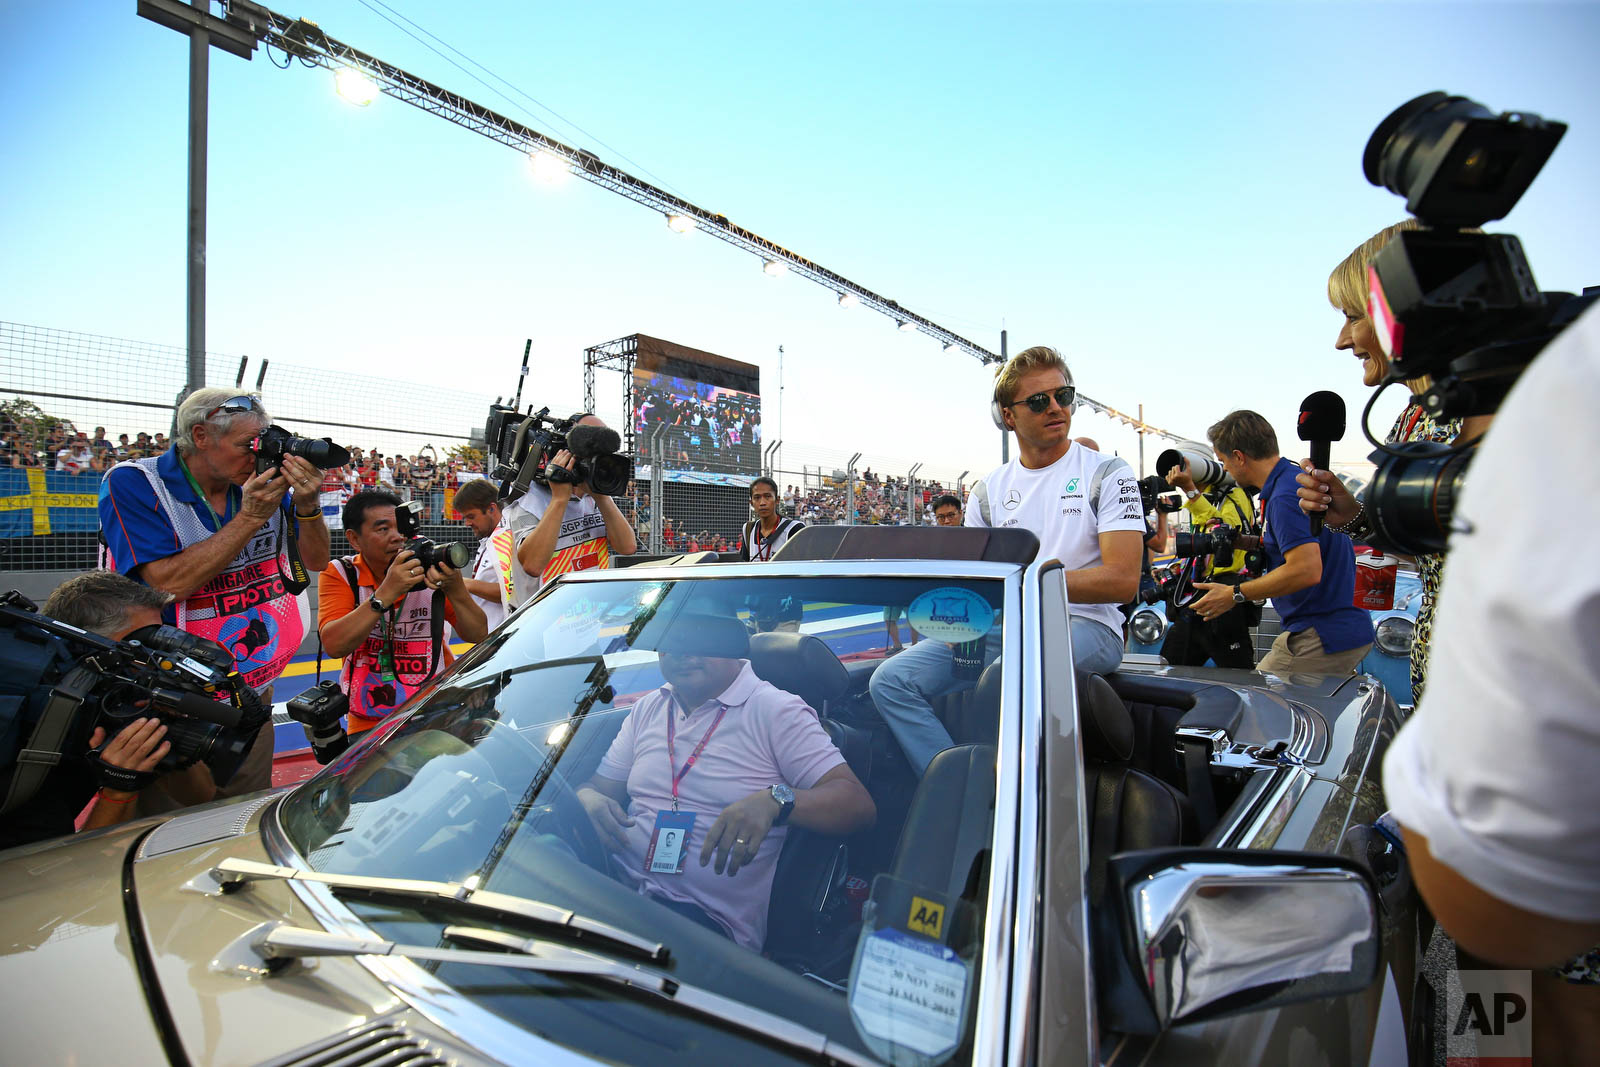 Mercedes driver Nico Rosberg of Germany sits in an open top car during the drivers parade ahead of the Singapore Formula One Grand Prix on the Marina Bay City Circuit in Singapore, Sunday, Sept. 18, 2016. (AP Photo/Yong Teck Lim)